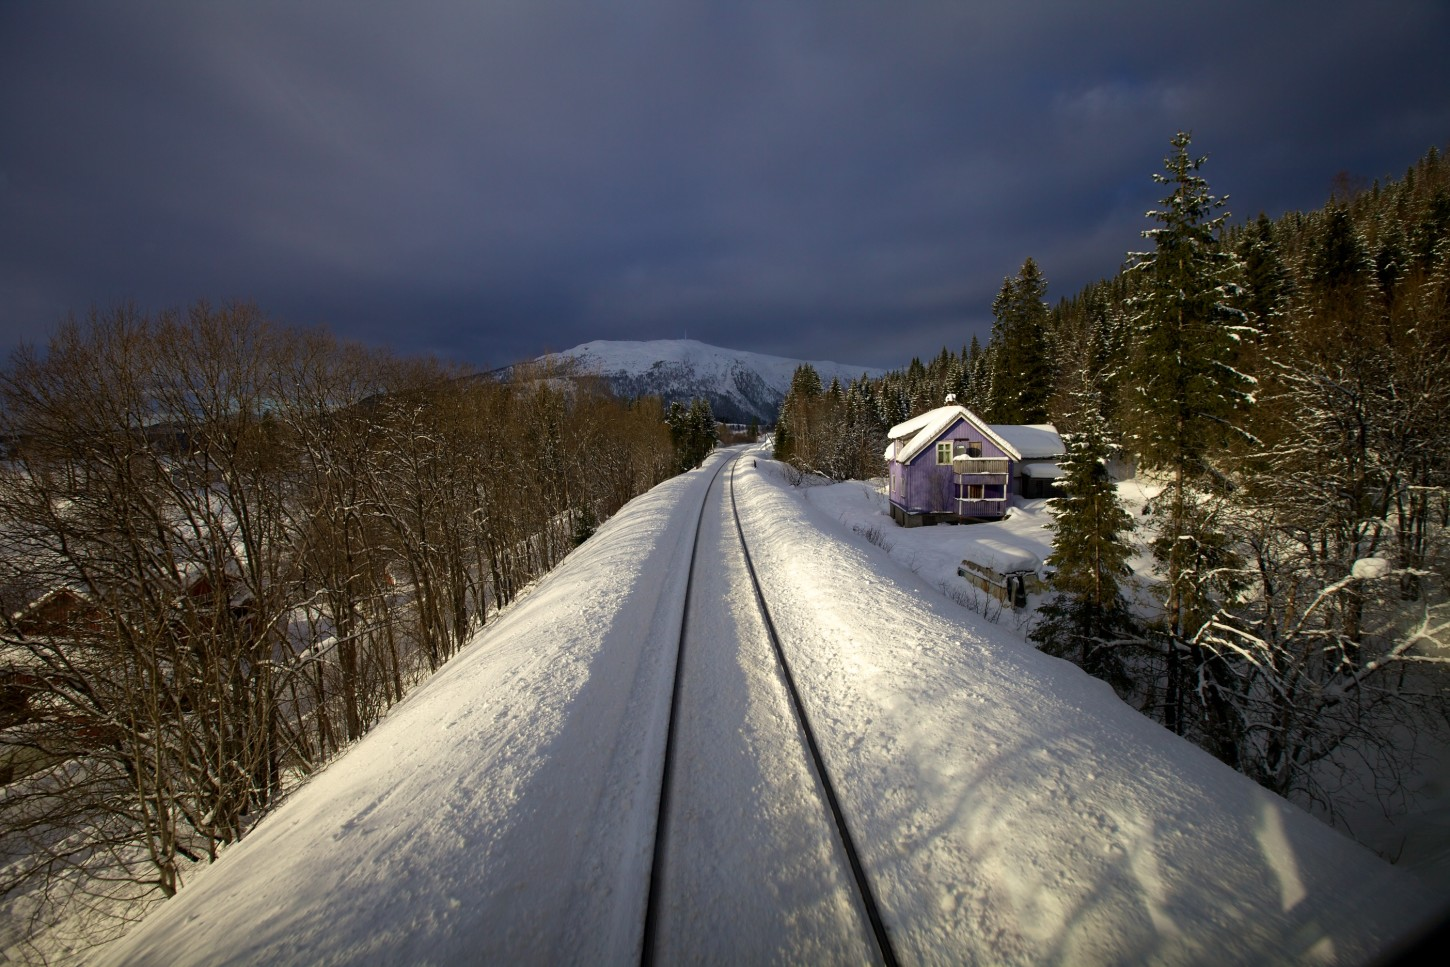 Train Journey to the Norwegian Arctic Circle, WINTER – curated by Phil Elverum (Mount Eerie)